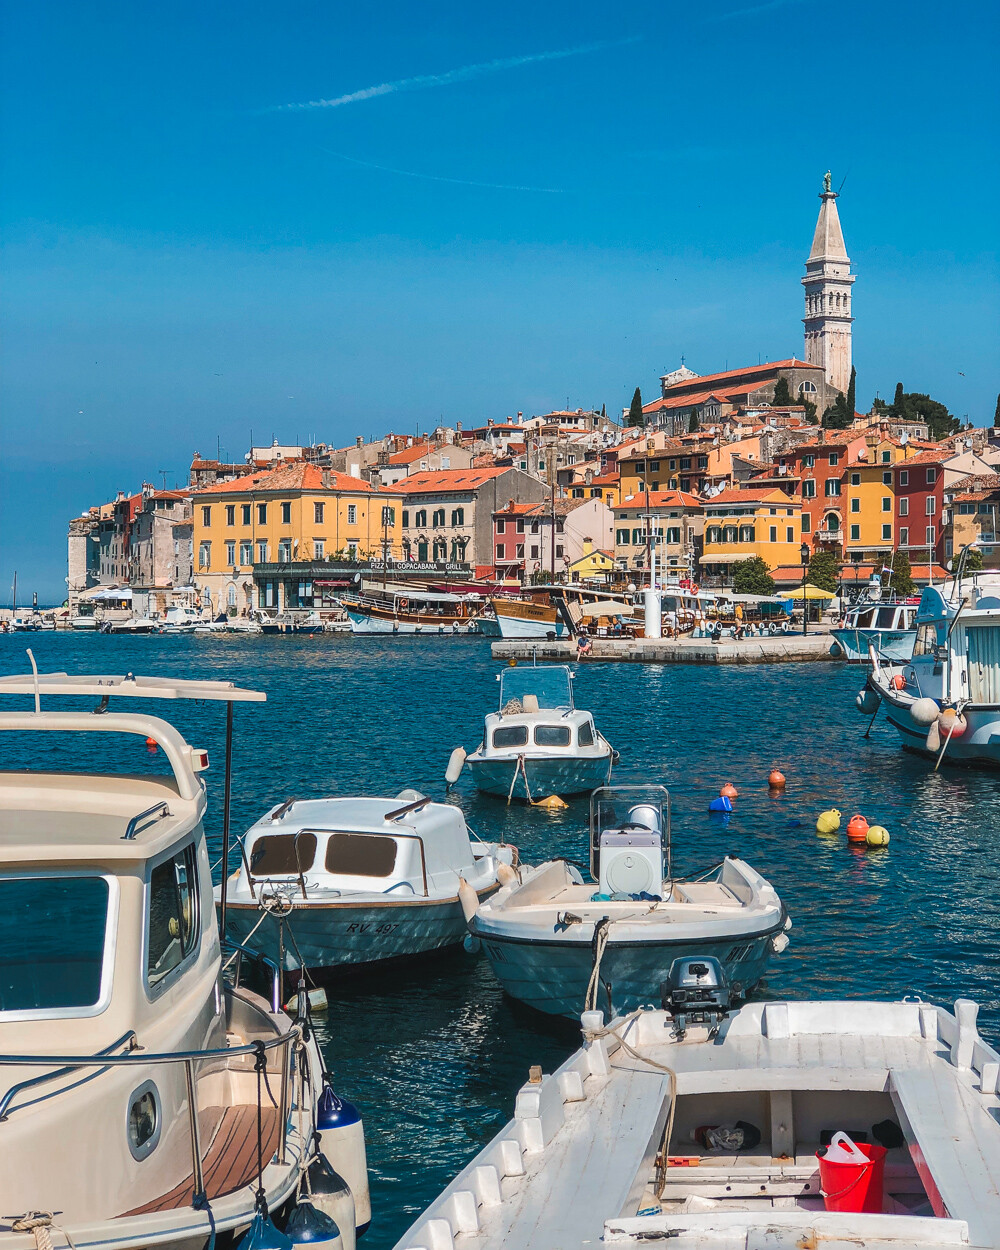 colorful town of Rovinj